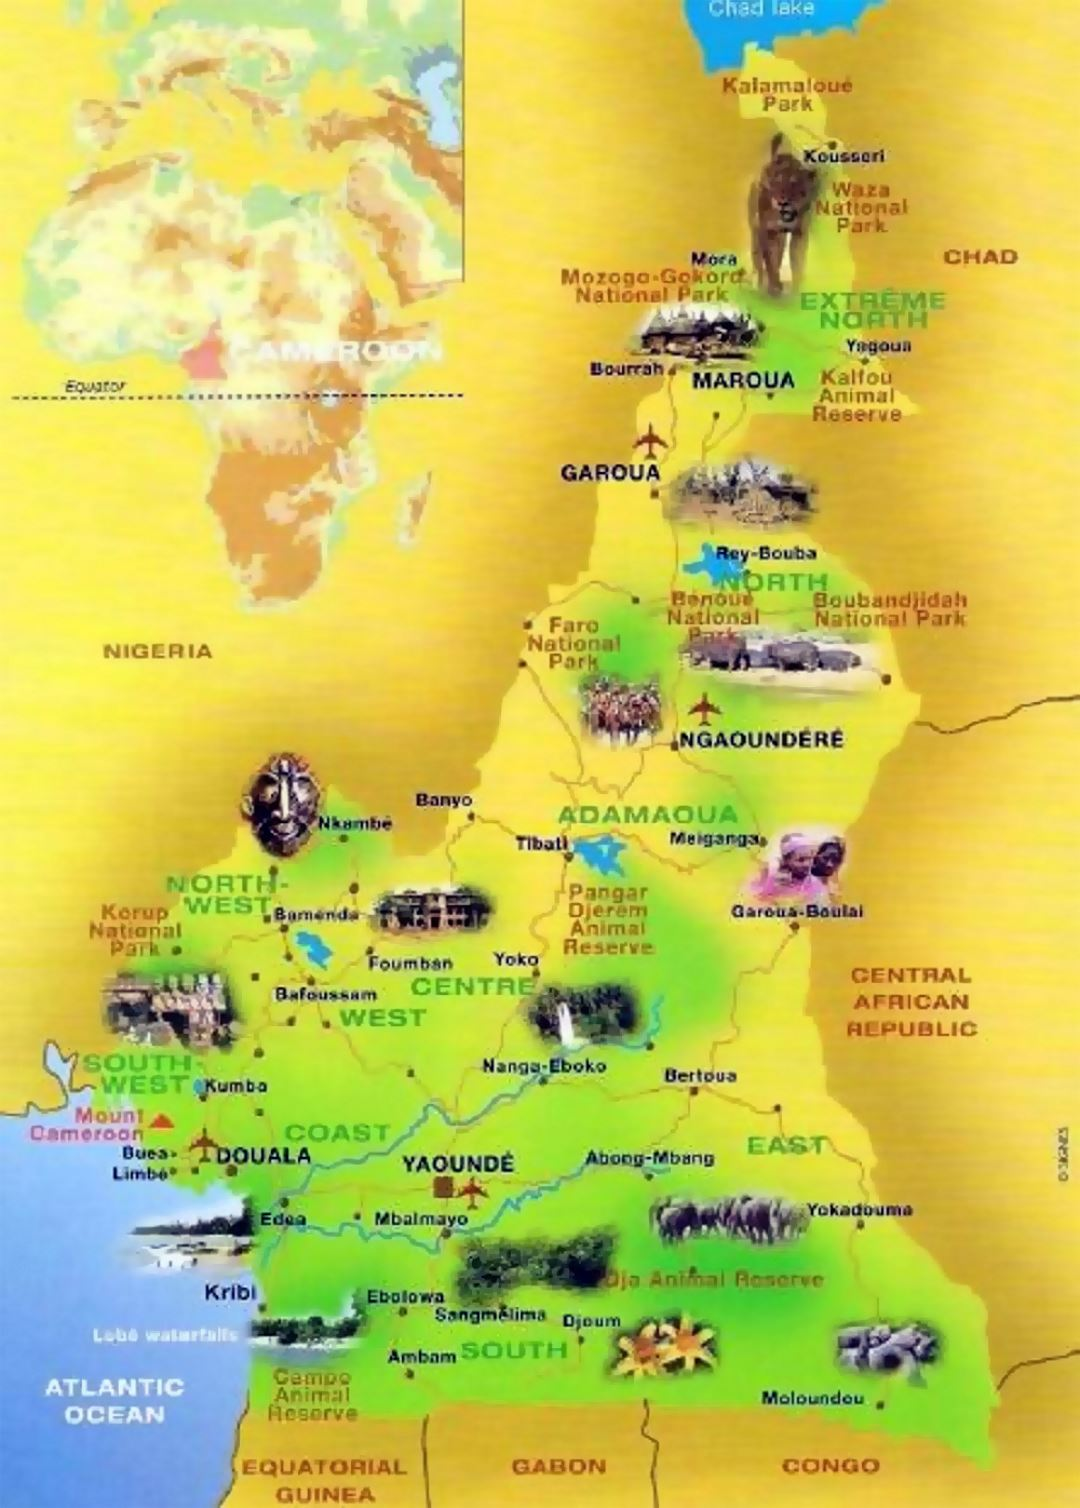 Detailed tourist map of Cameroon